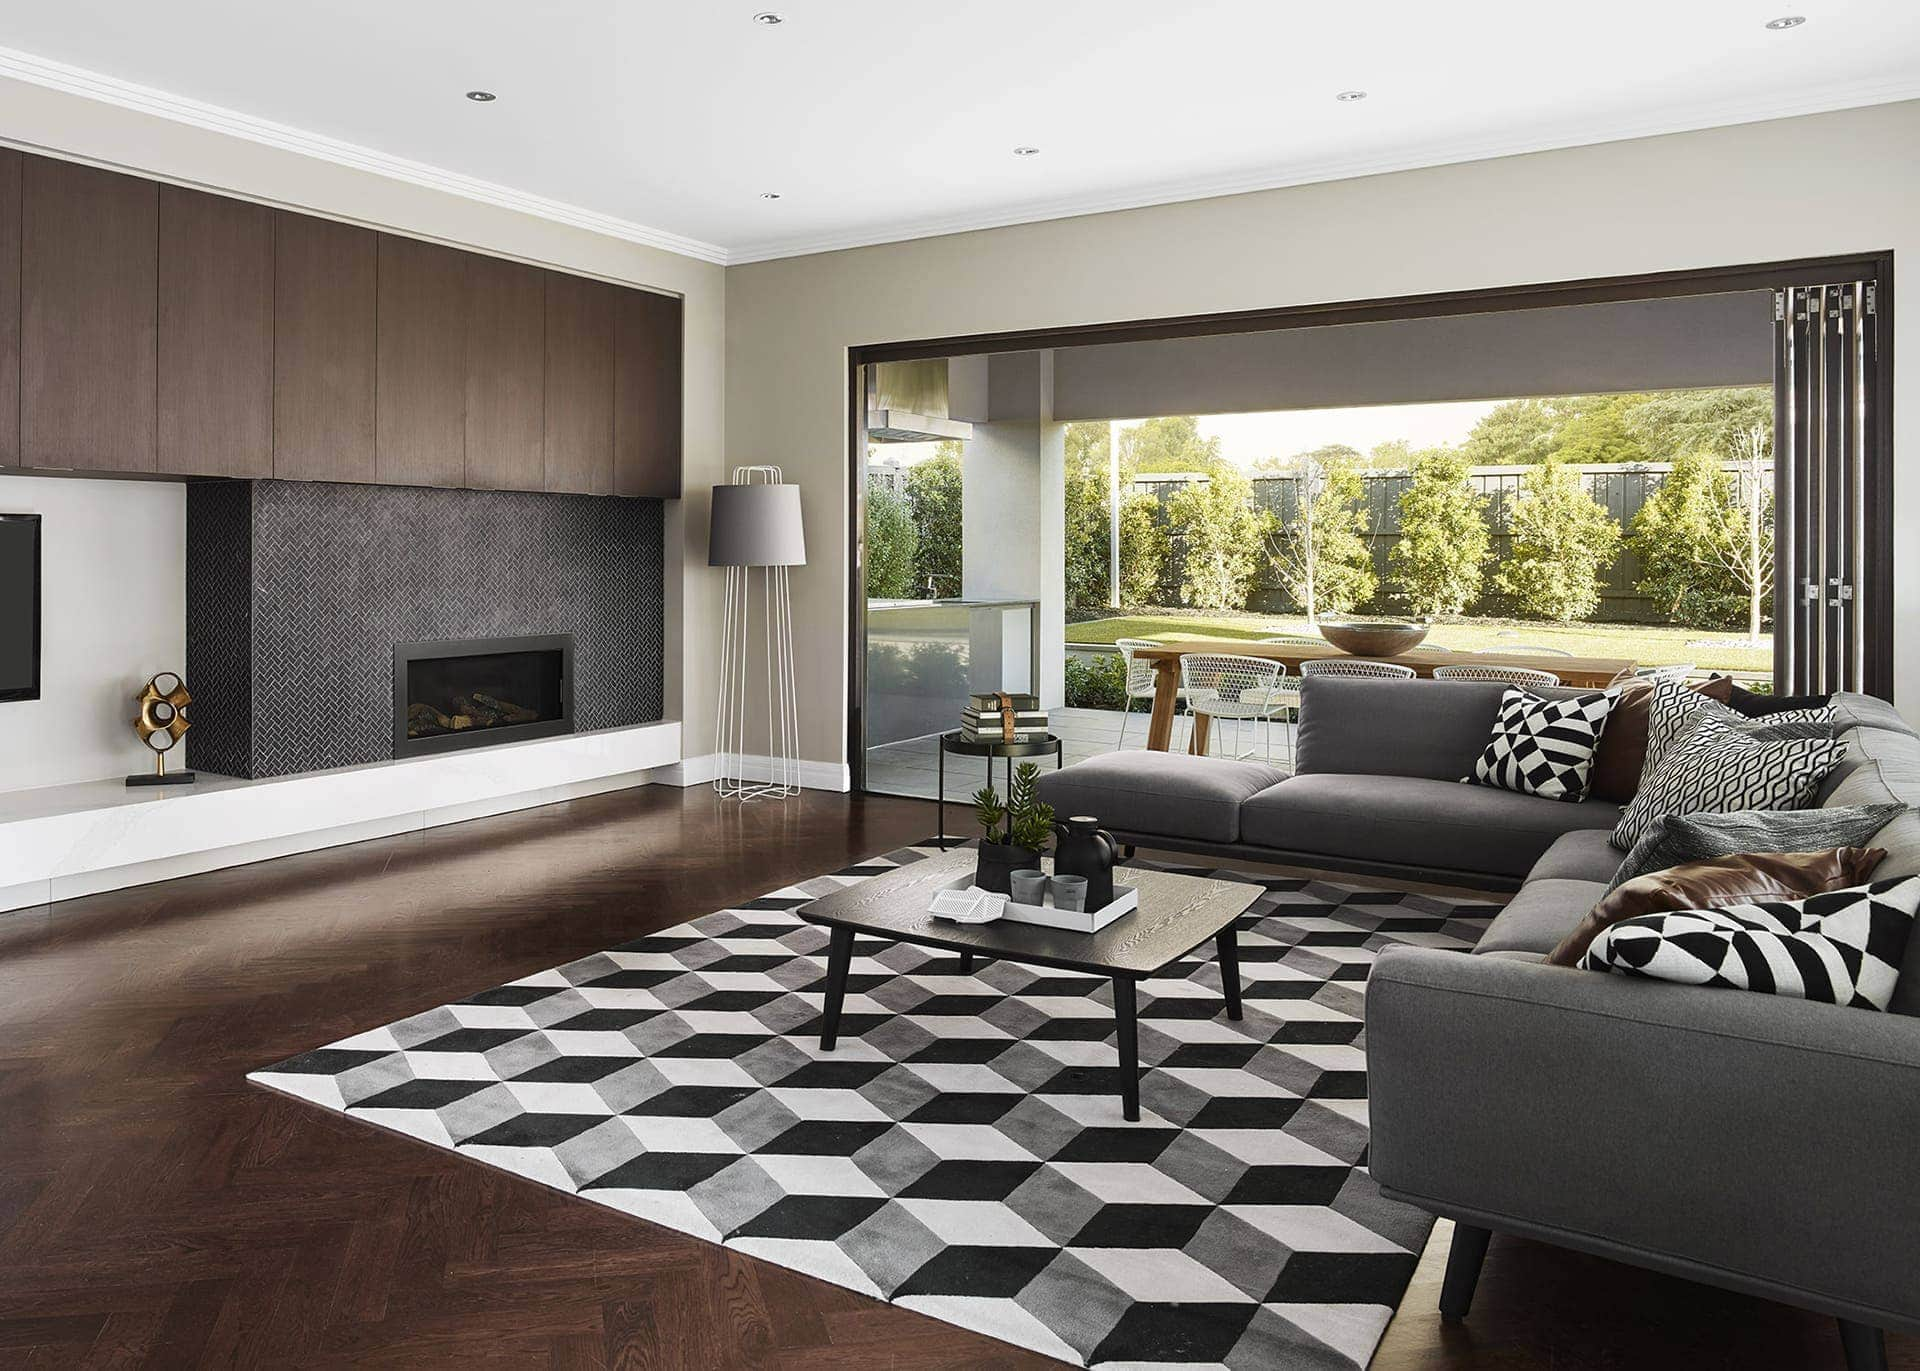 How to choose a rug style for your room the easy cheats - Black and white living room rug ...